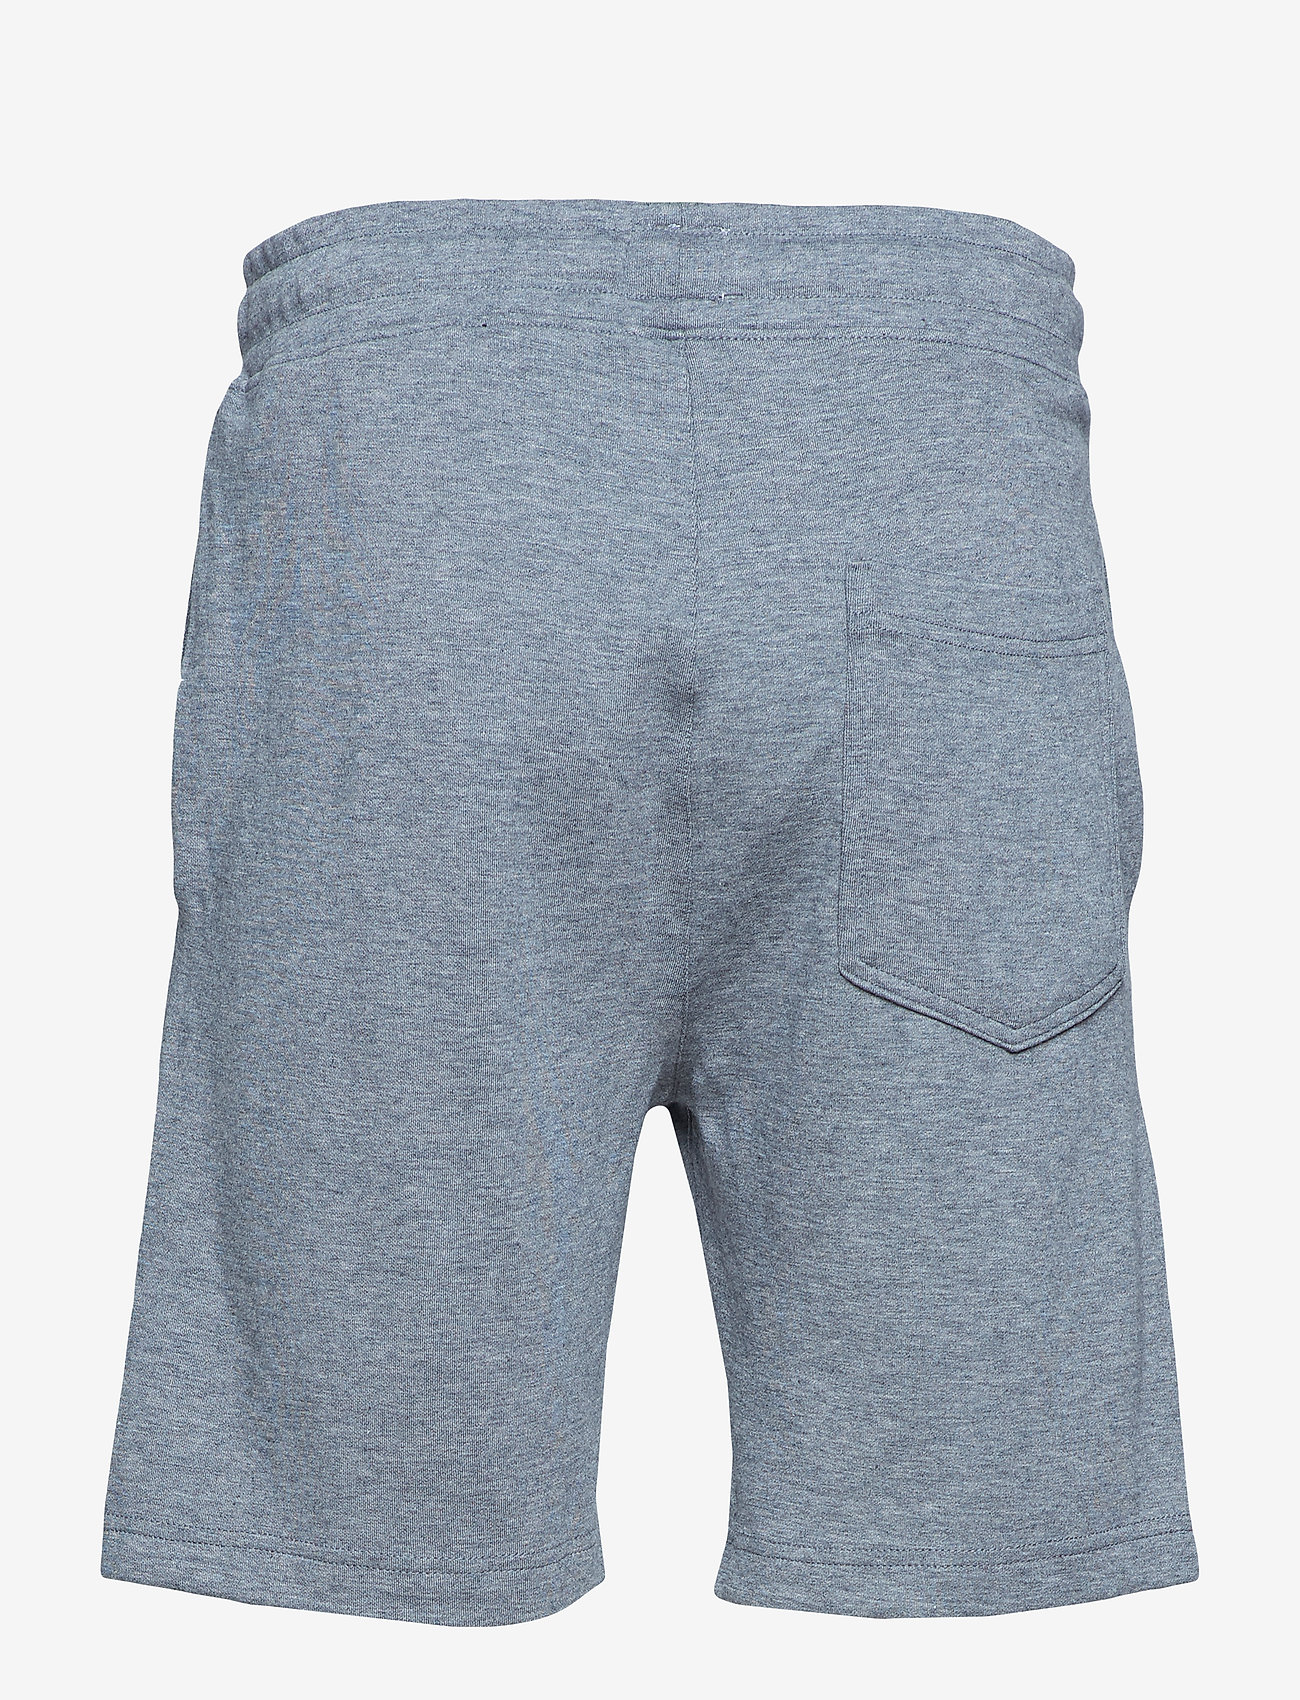 JBS of Denmark - JBS of Denmark, bamboo shorts - bottoms - dark grey